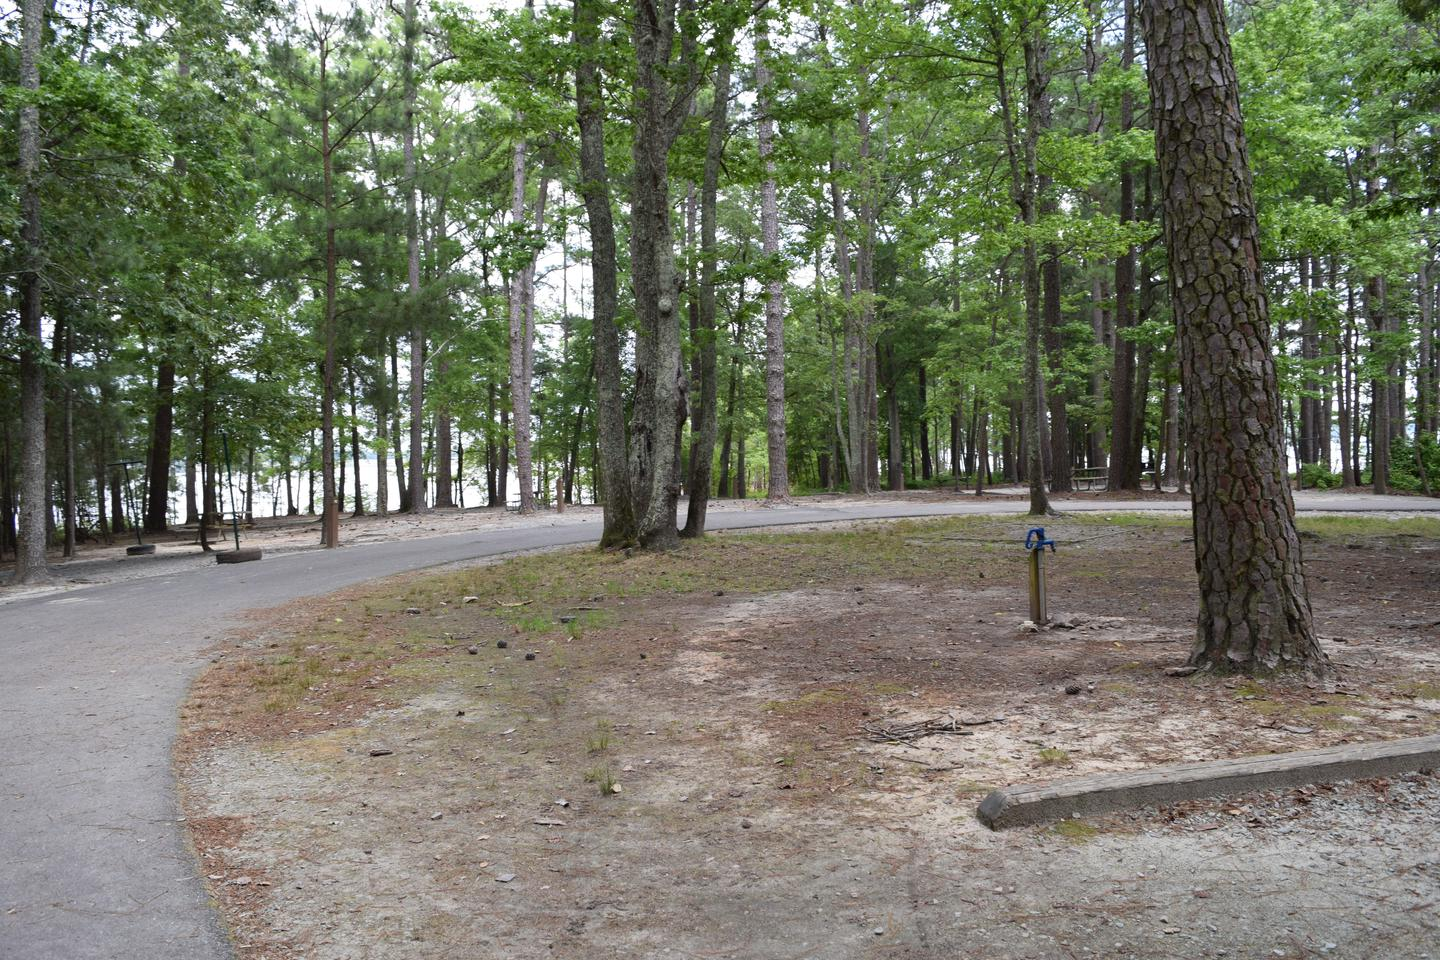 Piney Woods Group Camping AreaWelcome to Piney Woods Group Camping Area! This is a picture of some of the campsites located in the back part of Piney Woods. In this picture you can see the water spigots located near the shelter as well as some of the campsites with campsite posts in the back ground.